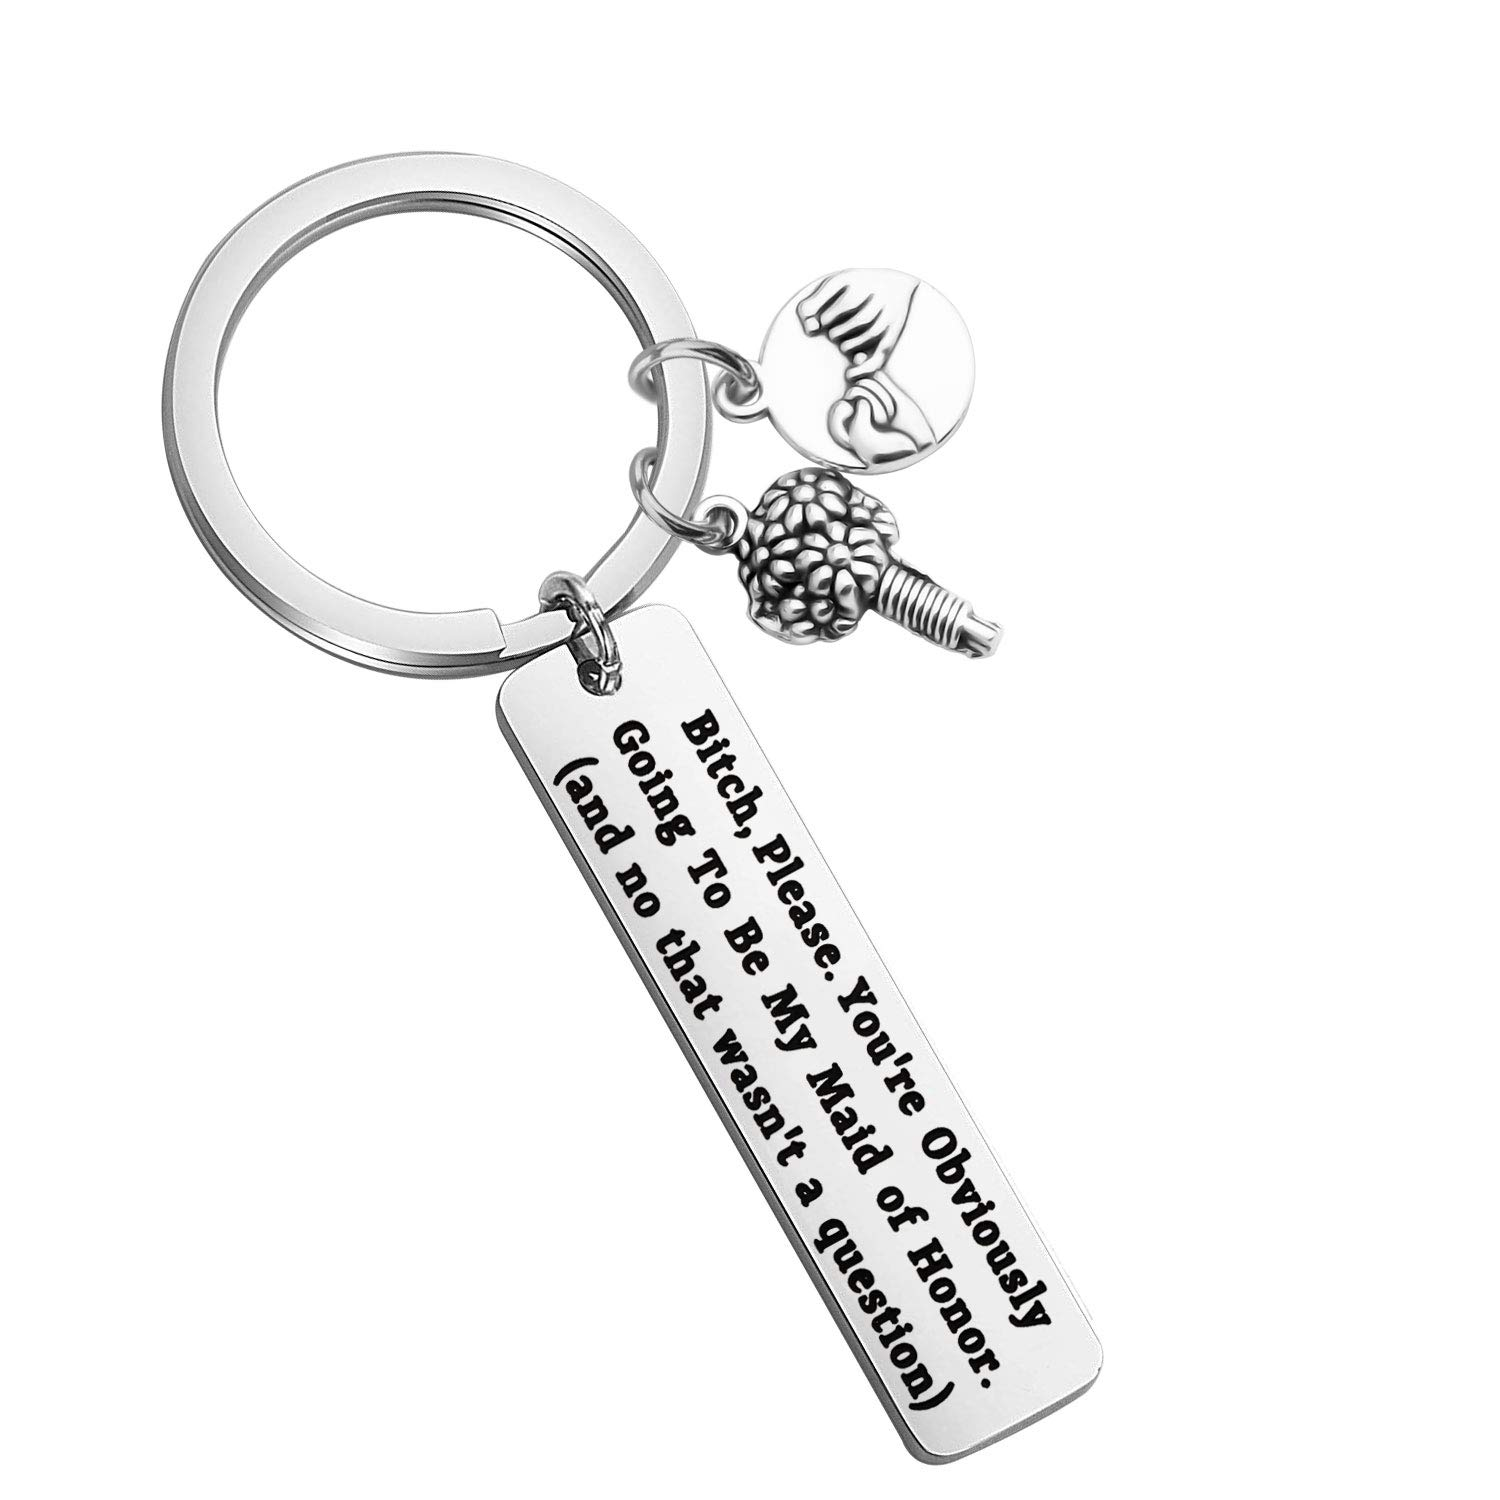 LQRI Maid of Honor Proposal Gift Youre Obviously Going to Be My Maid of Honor Keychain Wedding Gift for Brides Bitches Bride Bridesmaid Jewelry